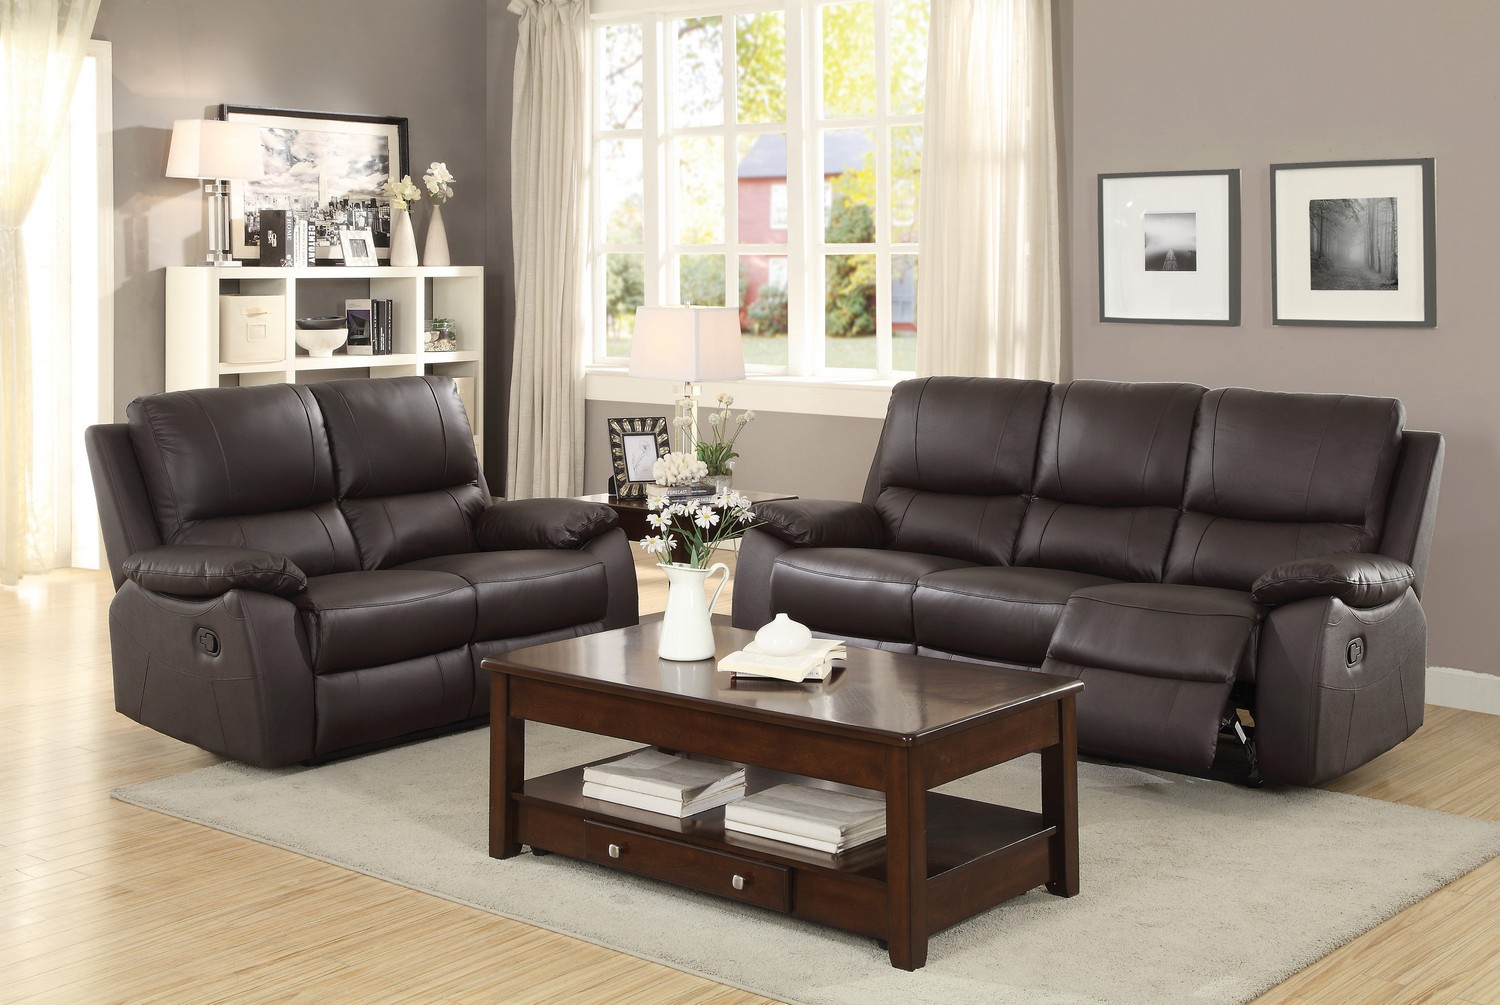 Homelegance Greeley Reclining Sofa Set - Top Grain Leather Match - Brown